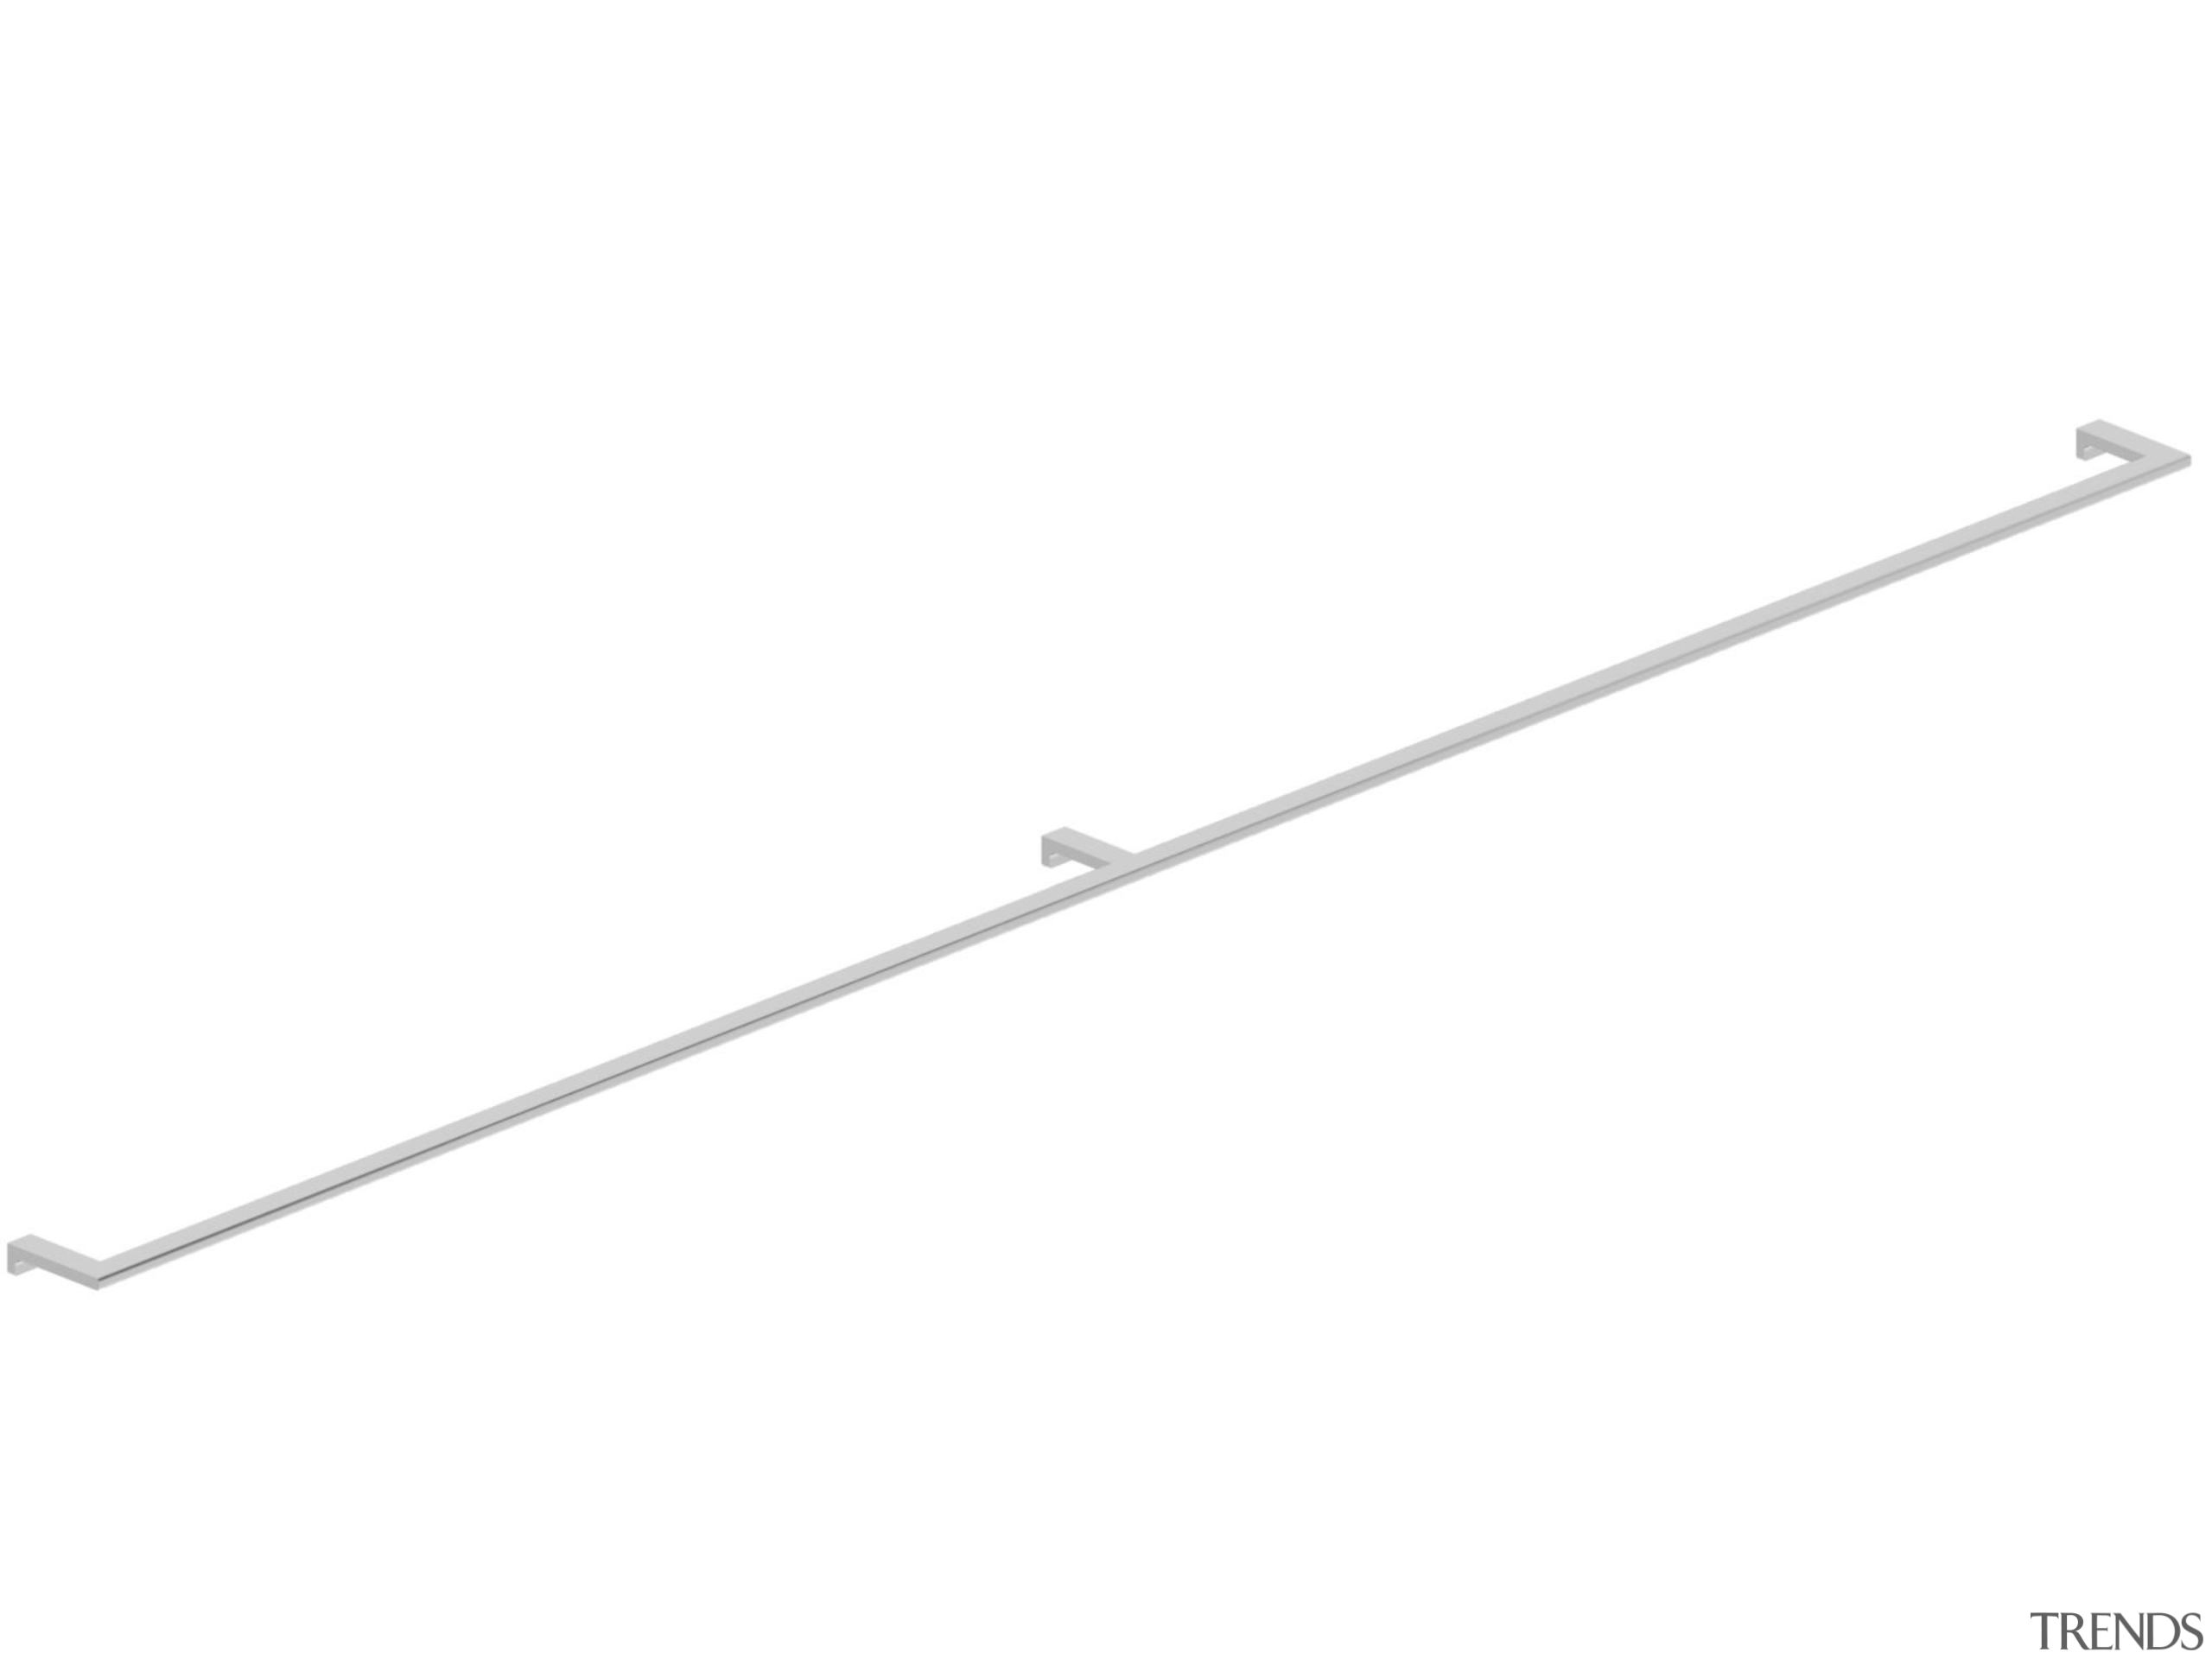 • Manufactured in Australia• Warranty 10 Years• DirectConnect angle, line, product, product design, white